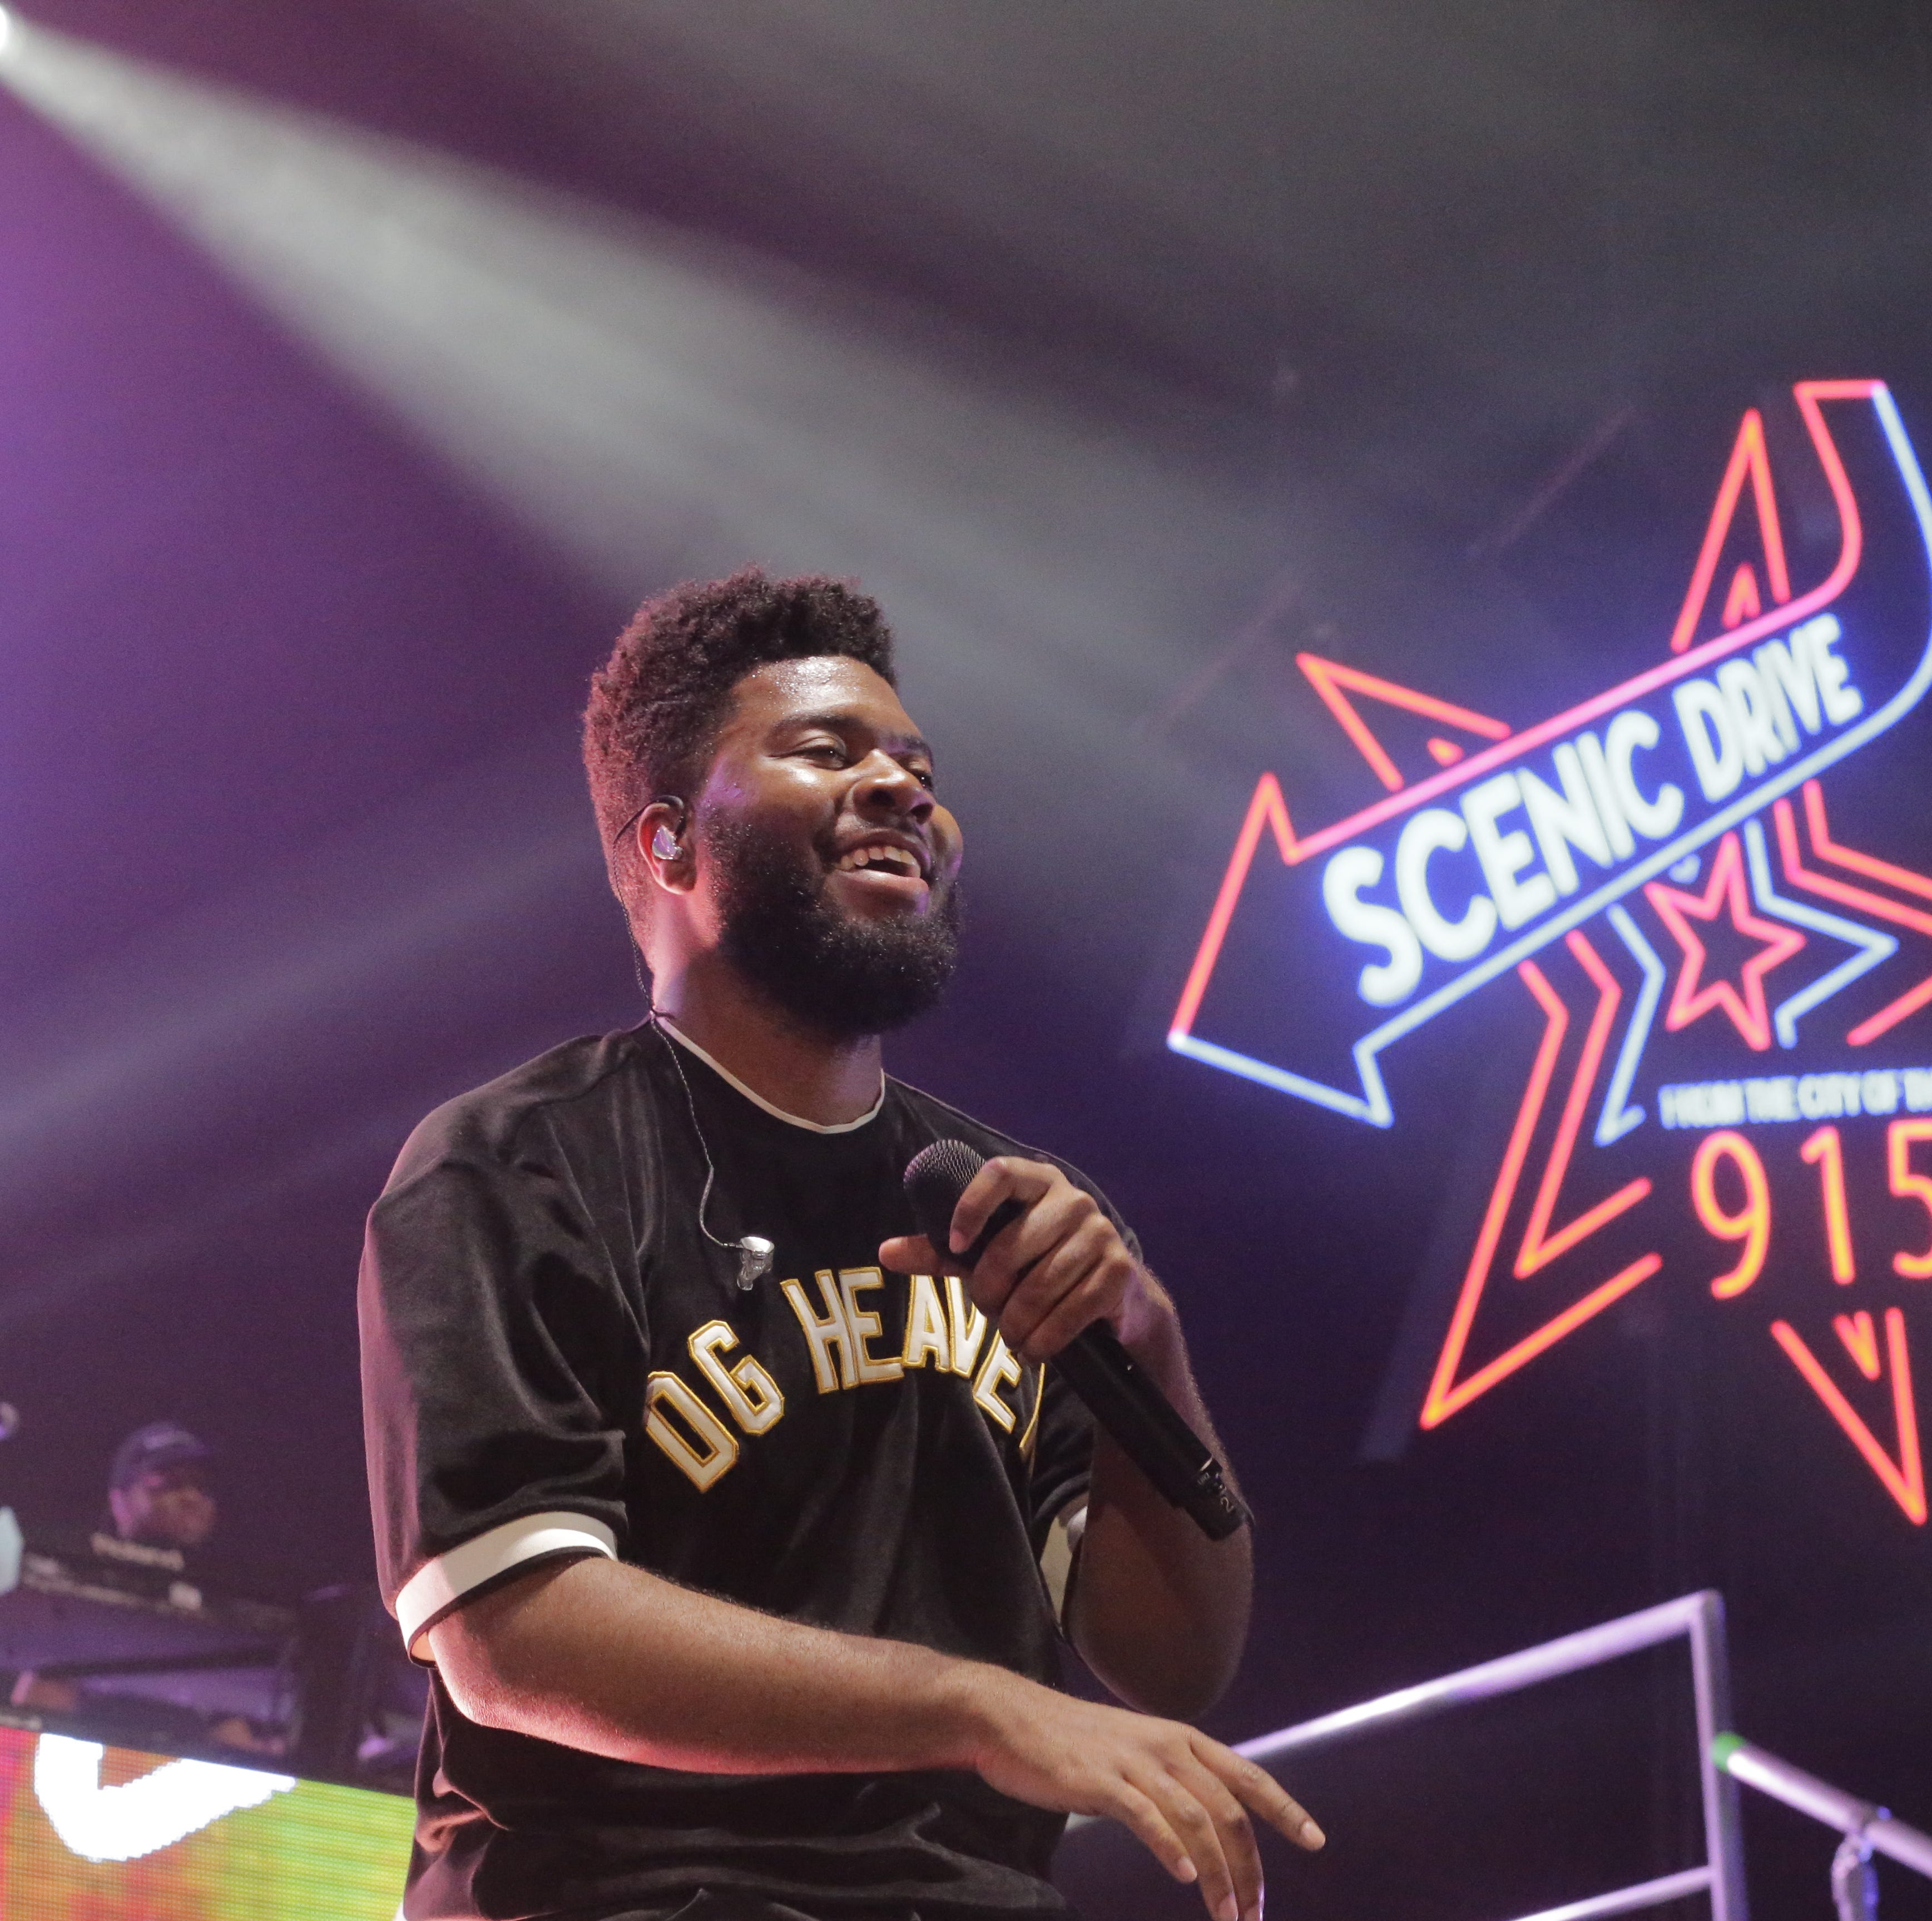 Khalid in El Paso concert: 11 top moments from Friday's hometown show back in 915